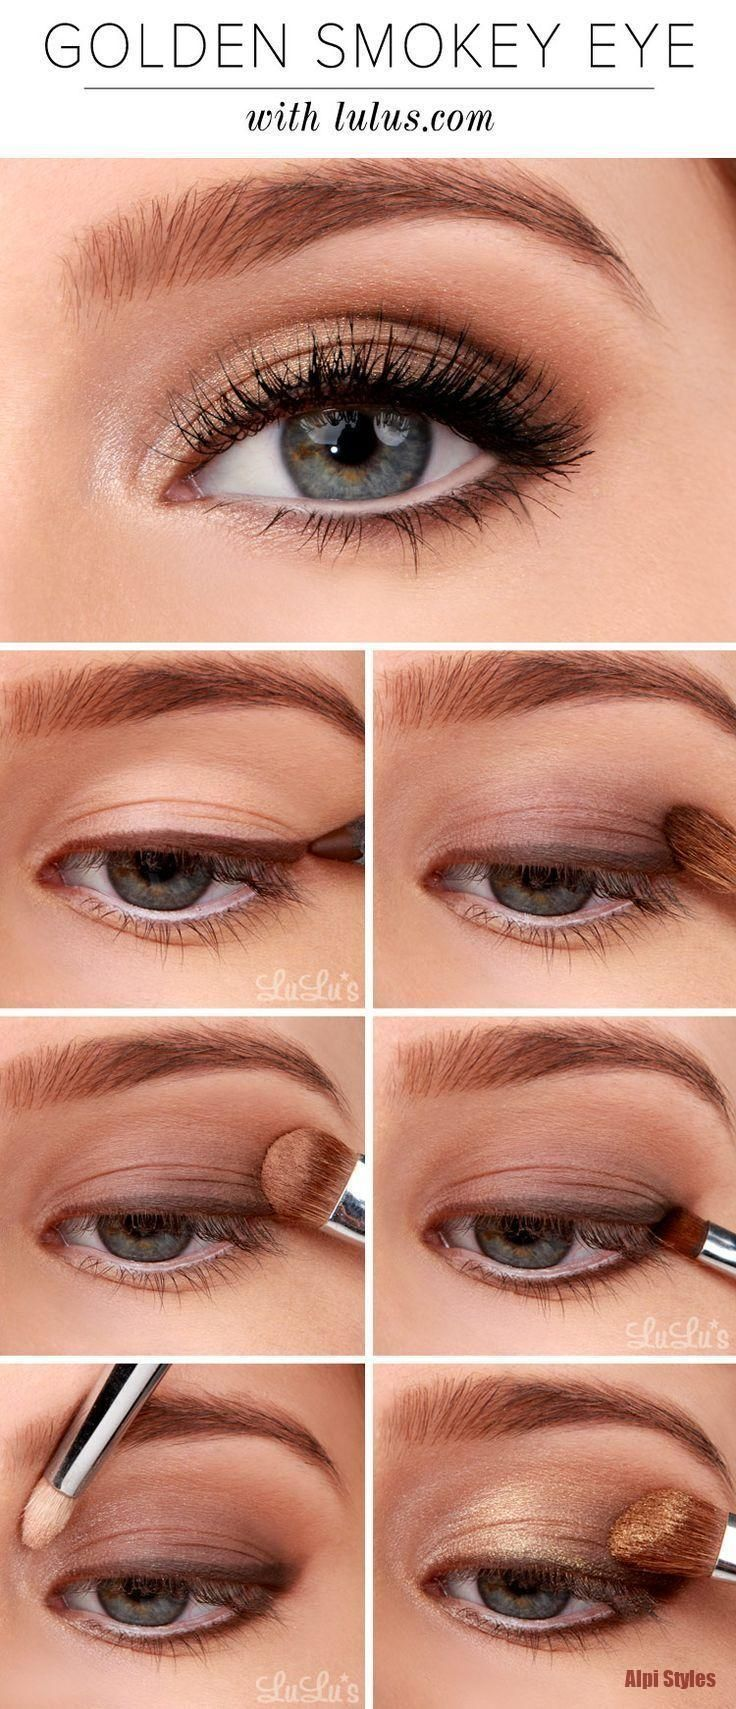 | Augen Make-up Tipps, Make-up Lidschatten, Wie Lidschatten, Make-up Tricks, Wie... Eyeliner | Auge